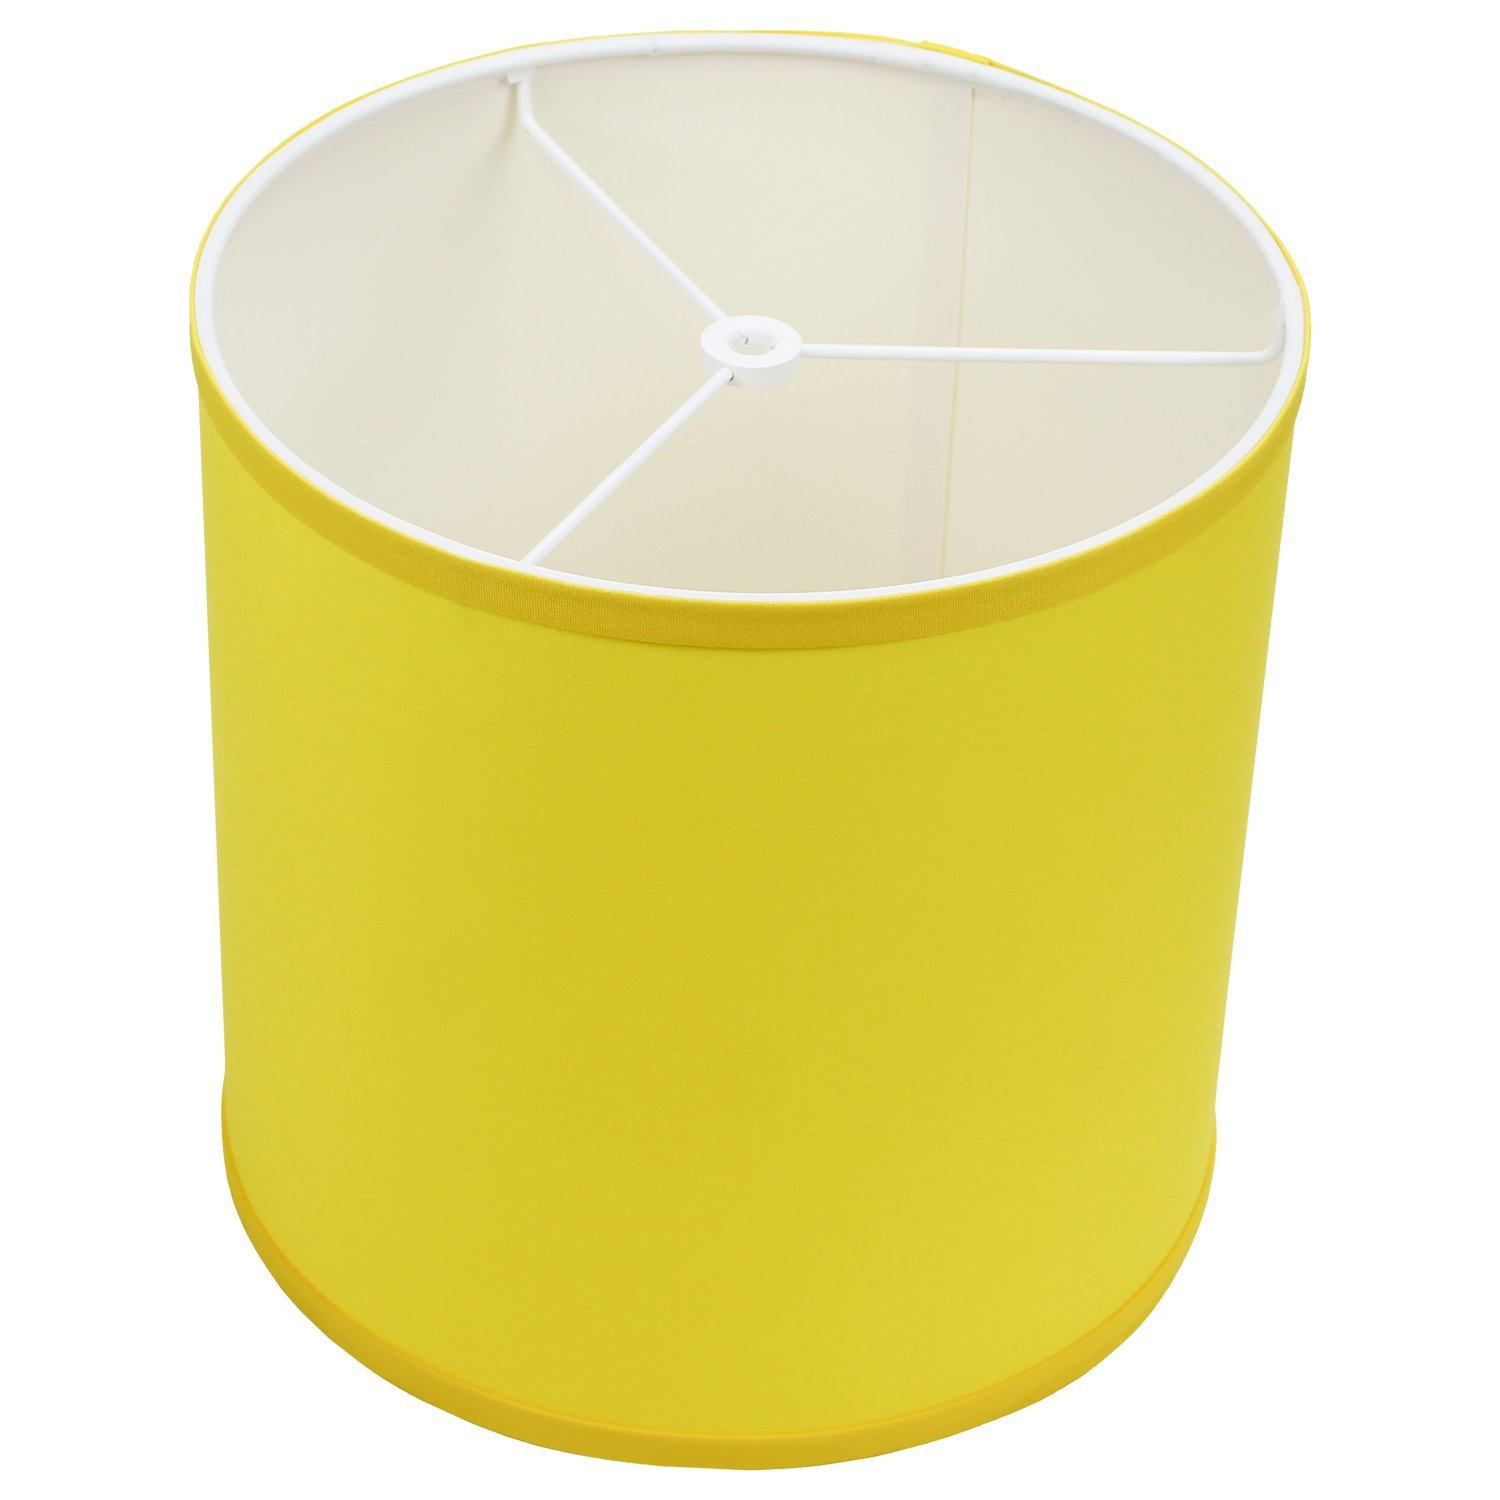 FenchelShades.com 10.5'' Top Diameter x 10.5'' Bottom Diameter 10.5'' Height Cylinder Drum Lampshade USA Made (Citrus)